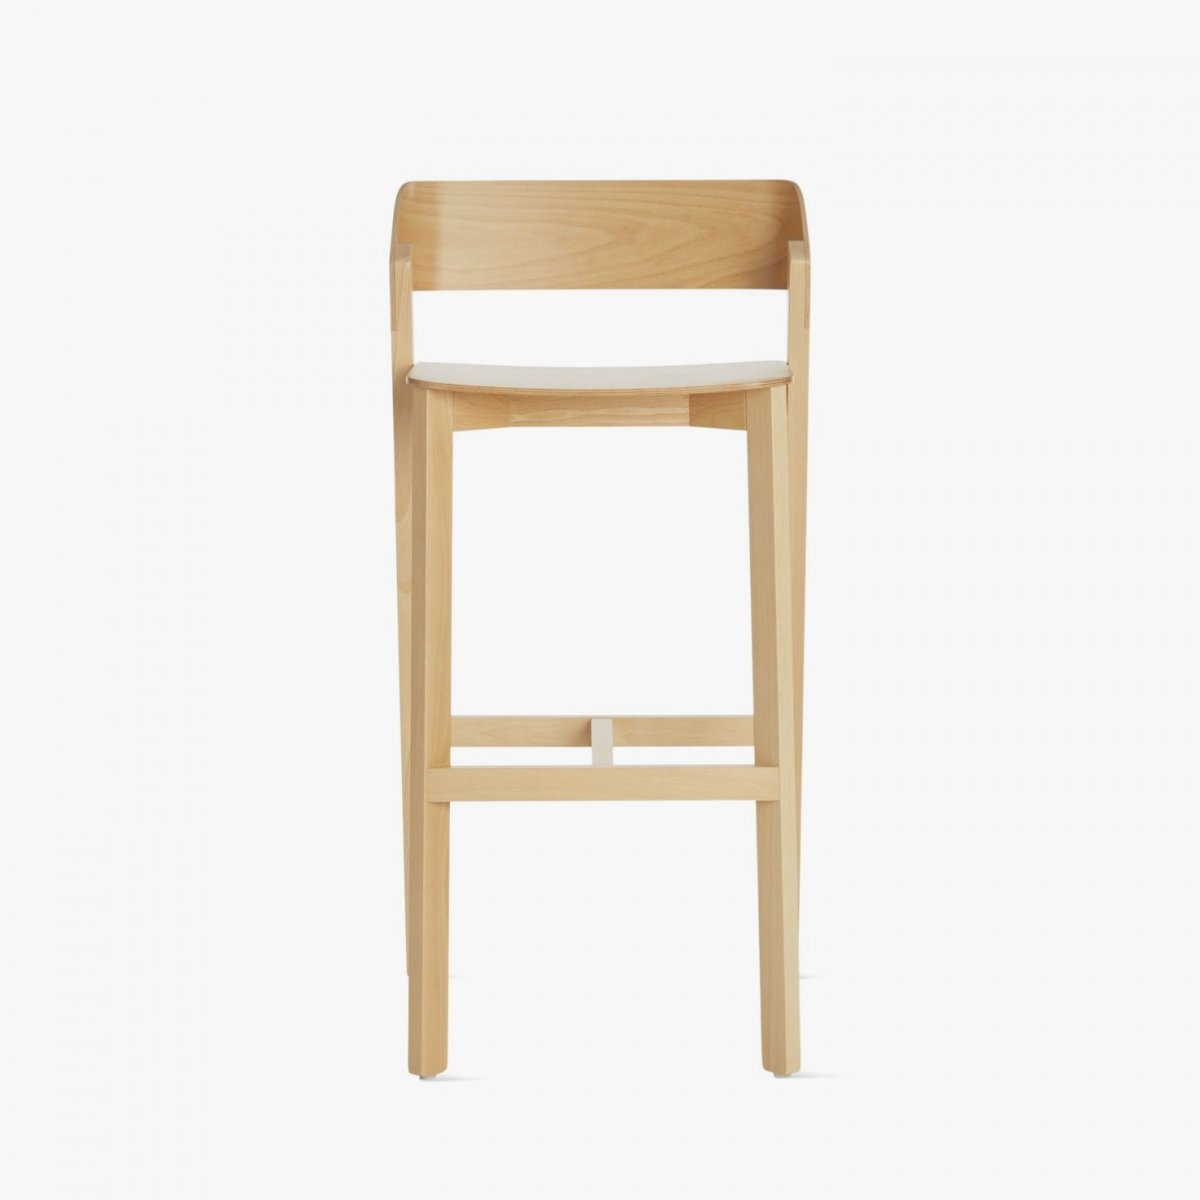 Barstool Merano, front view.